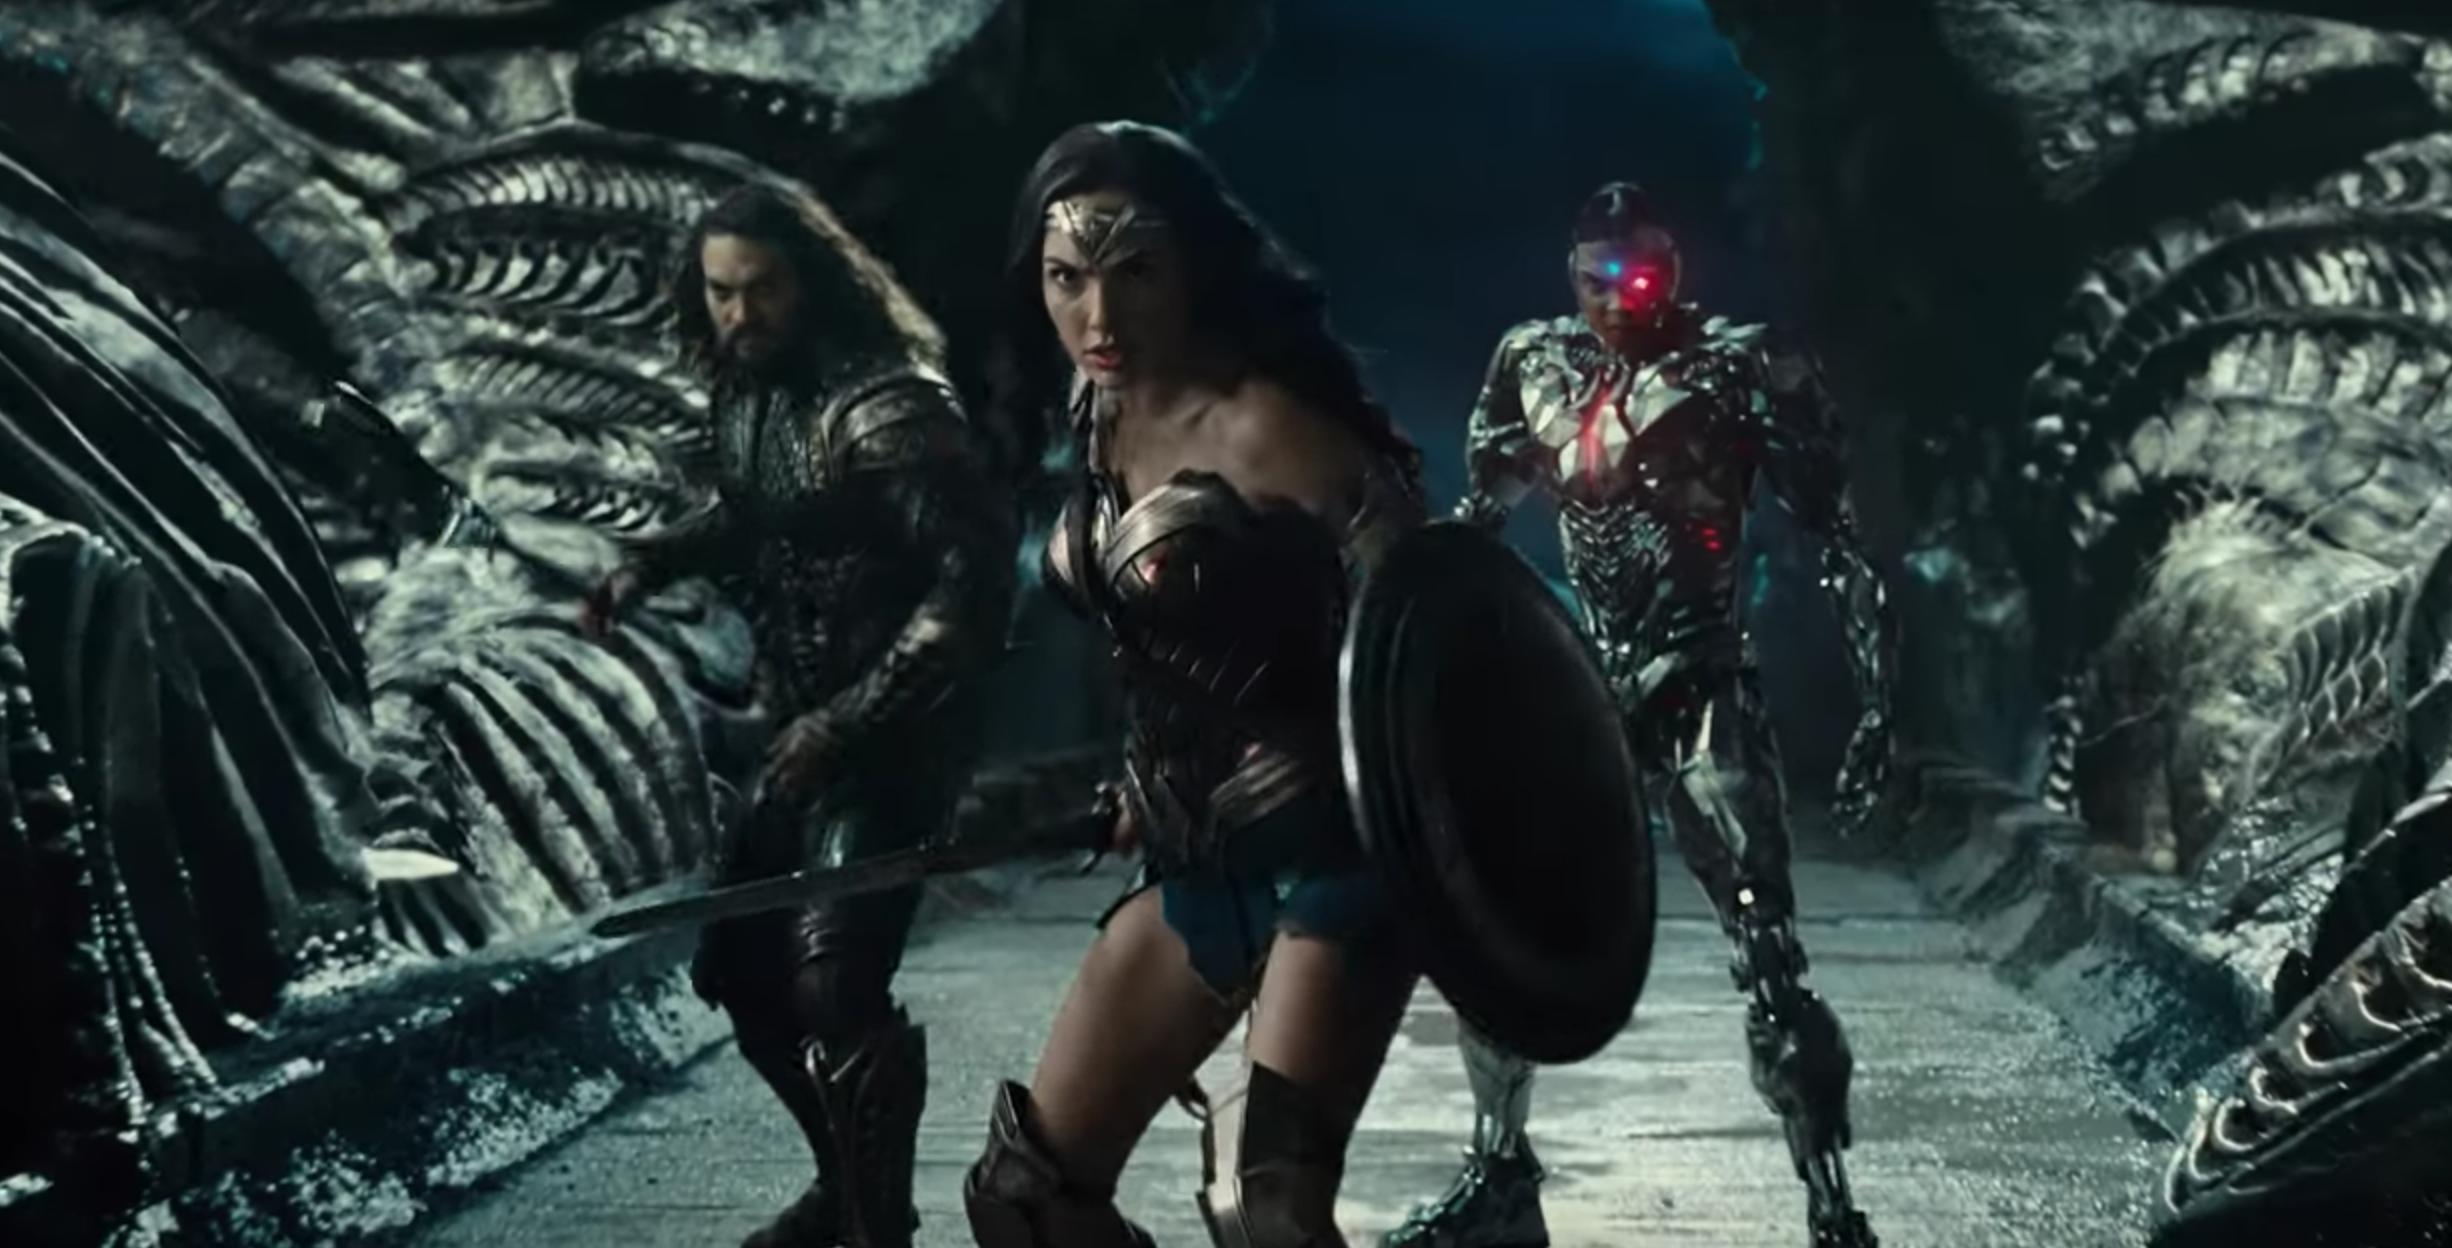 Everyone's fighting bad guys in first 'Justice League' trailer